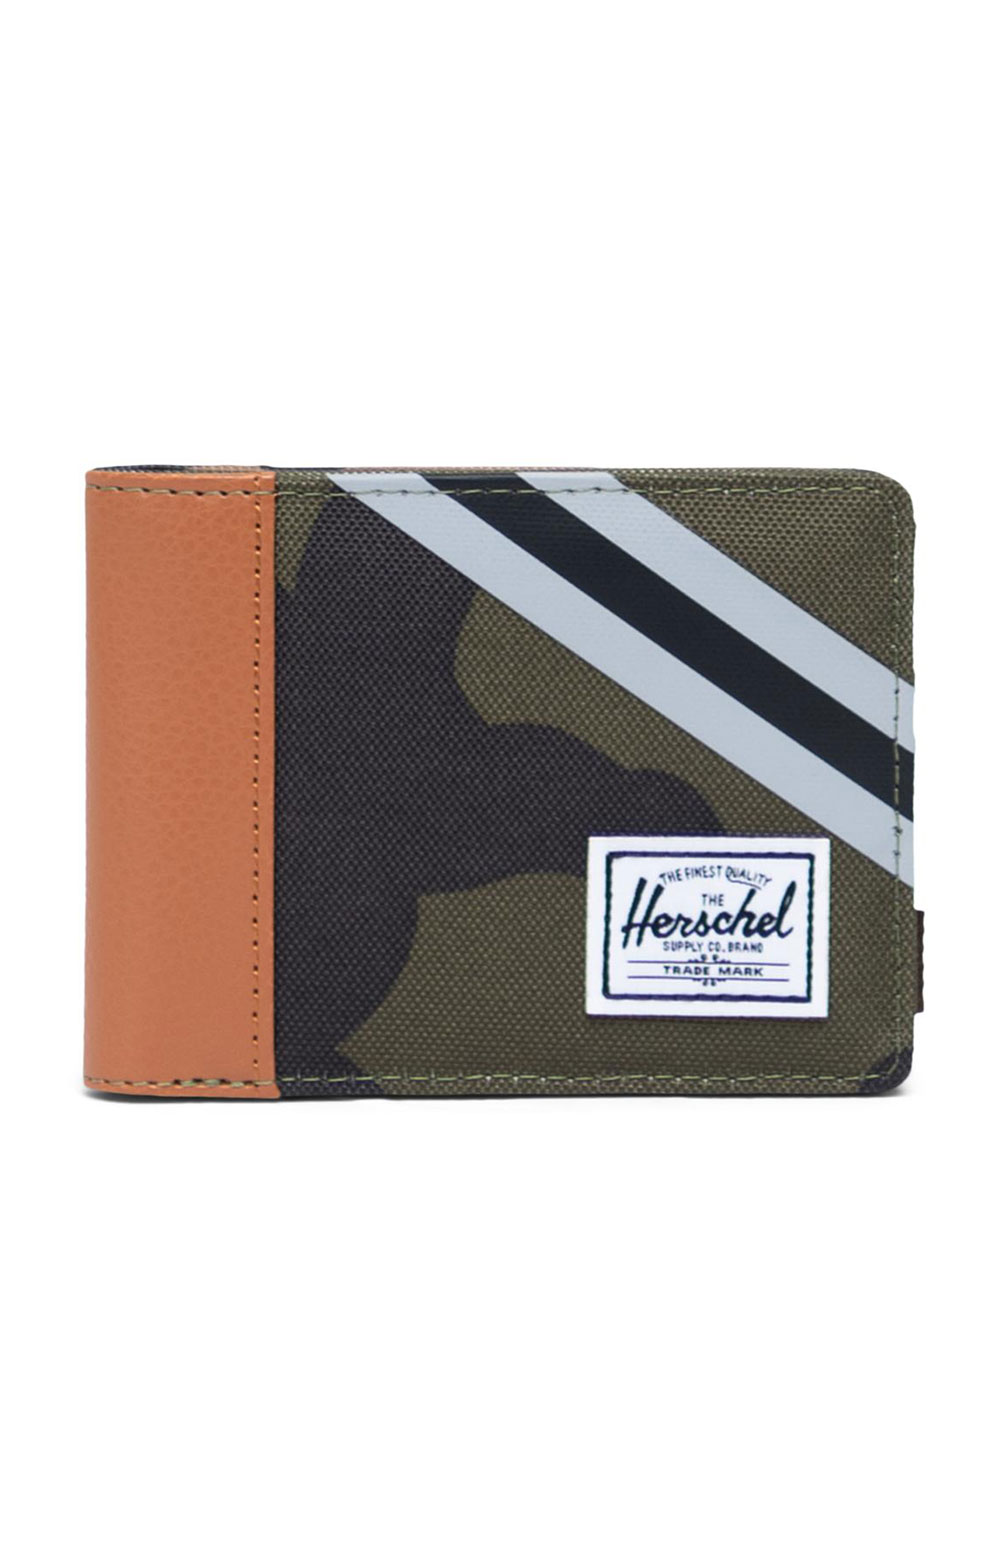 Roy Reflective Wallet - Woodland Camo/Stripe Vapor/Black